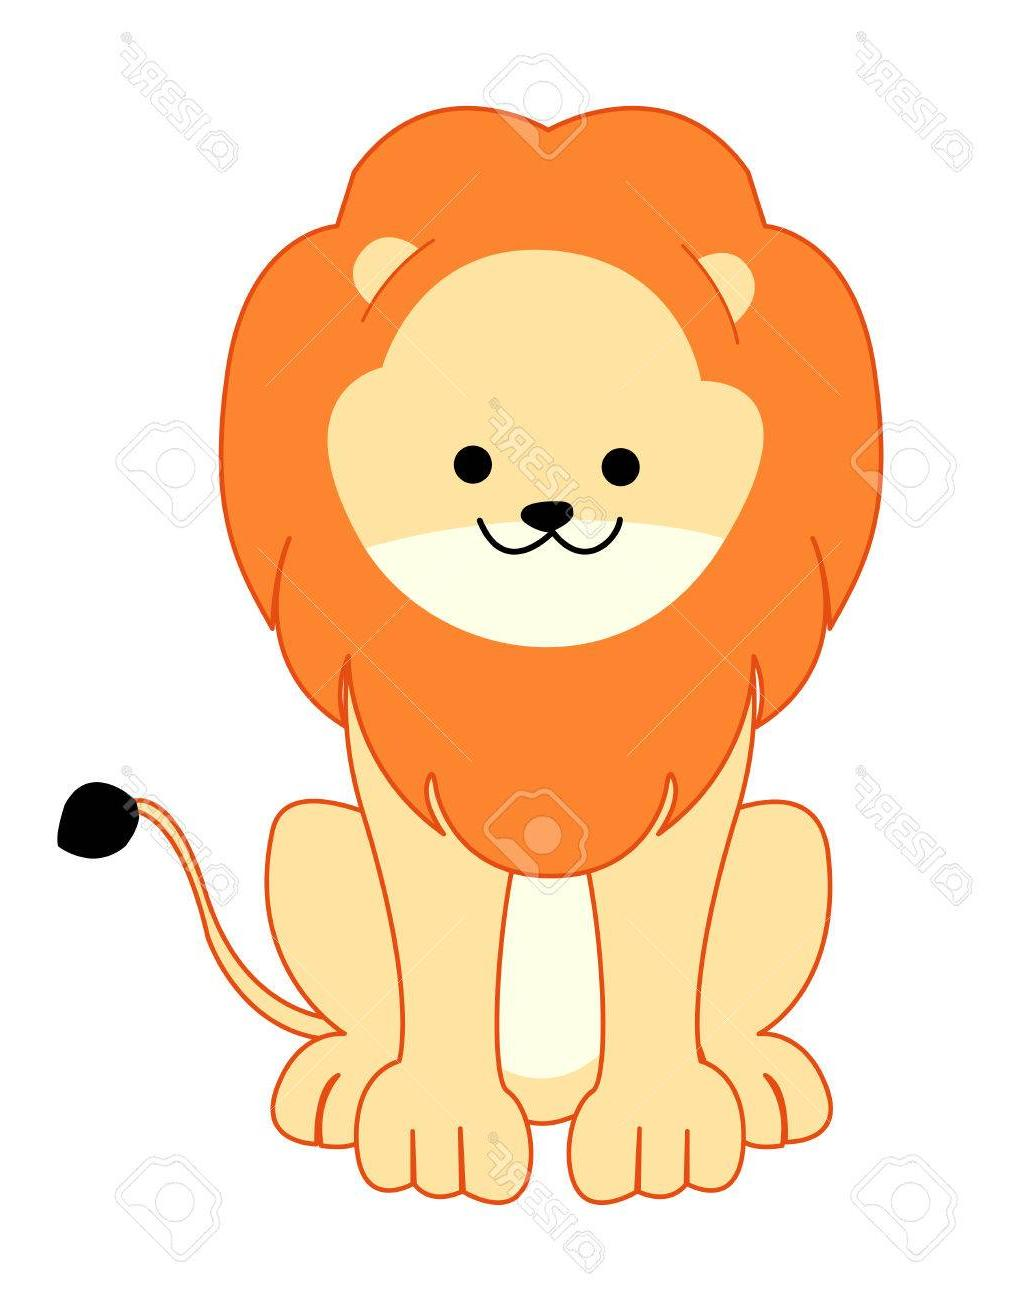 Baby lion clipart vector stock Best HD Sitting Lion Clip Art Pictures » Free Vector Art, Images ... stock